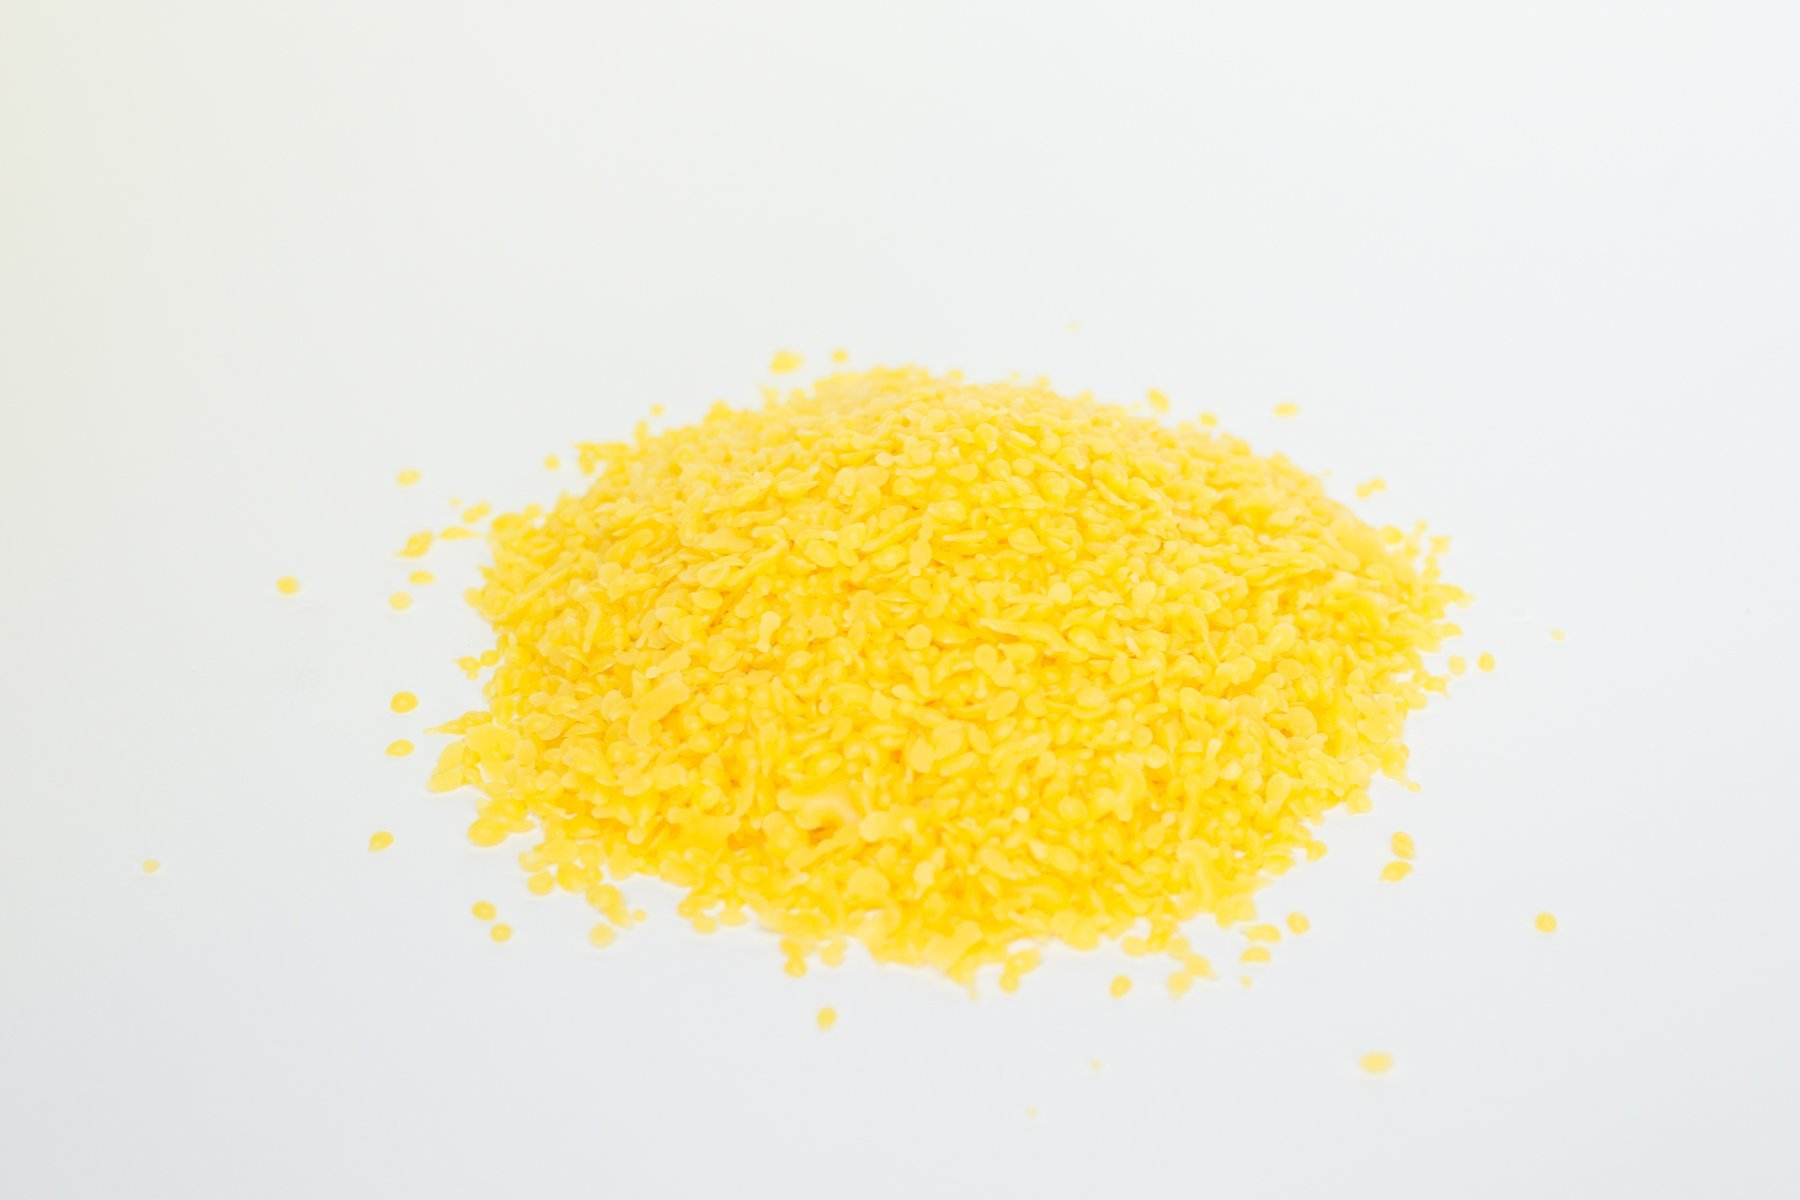 100% Pure Yellow easy to use Beeswax Wax Pellets by Candlewic. Premium Quality, cosmetic grade beeswax that is perfect for your lip balm balms, body lotions, creams and candle making. (10lb. Bag) by Candlewic (Image #1)